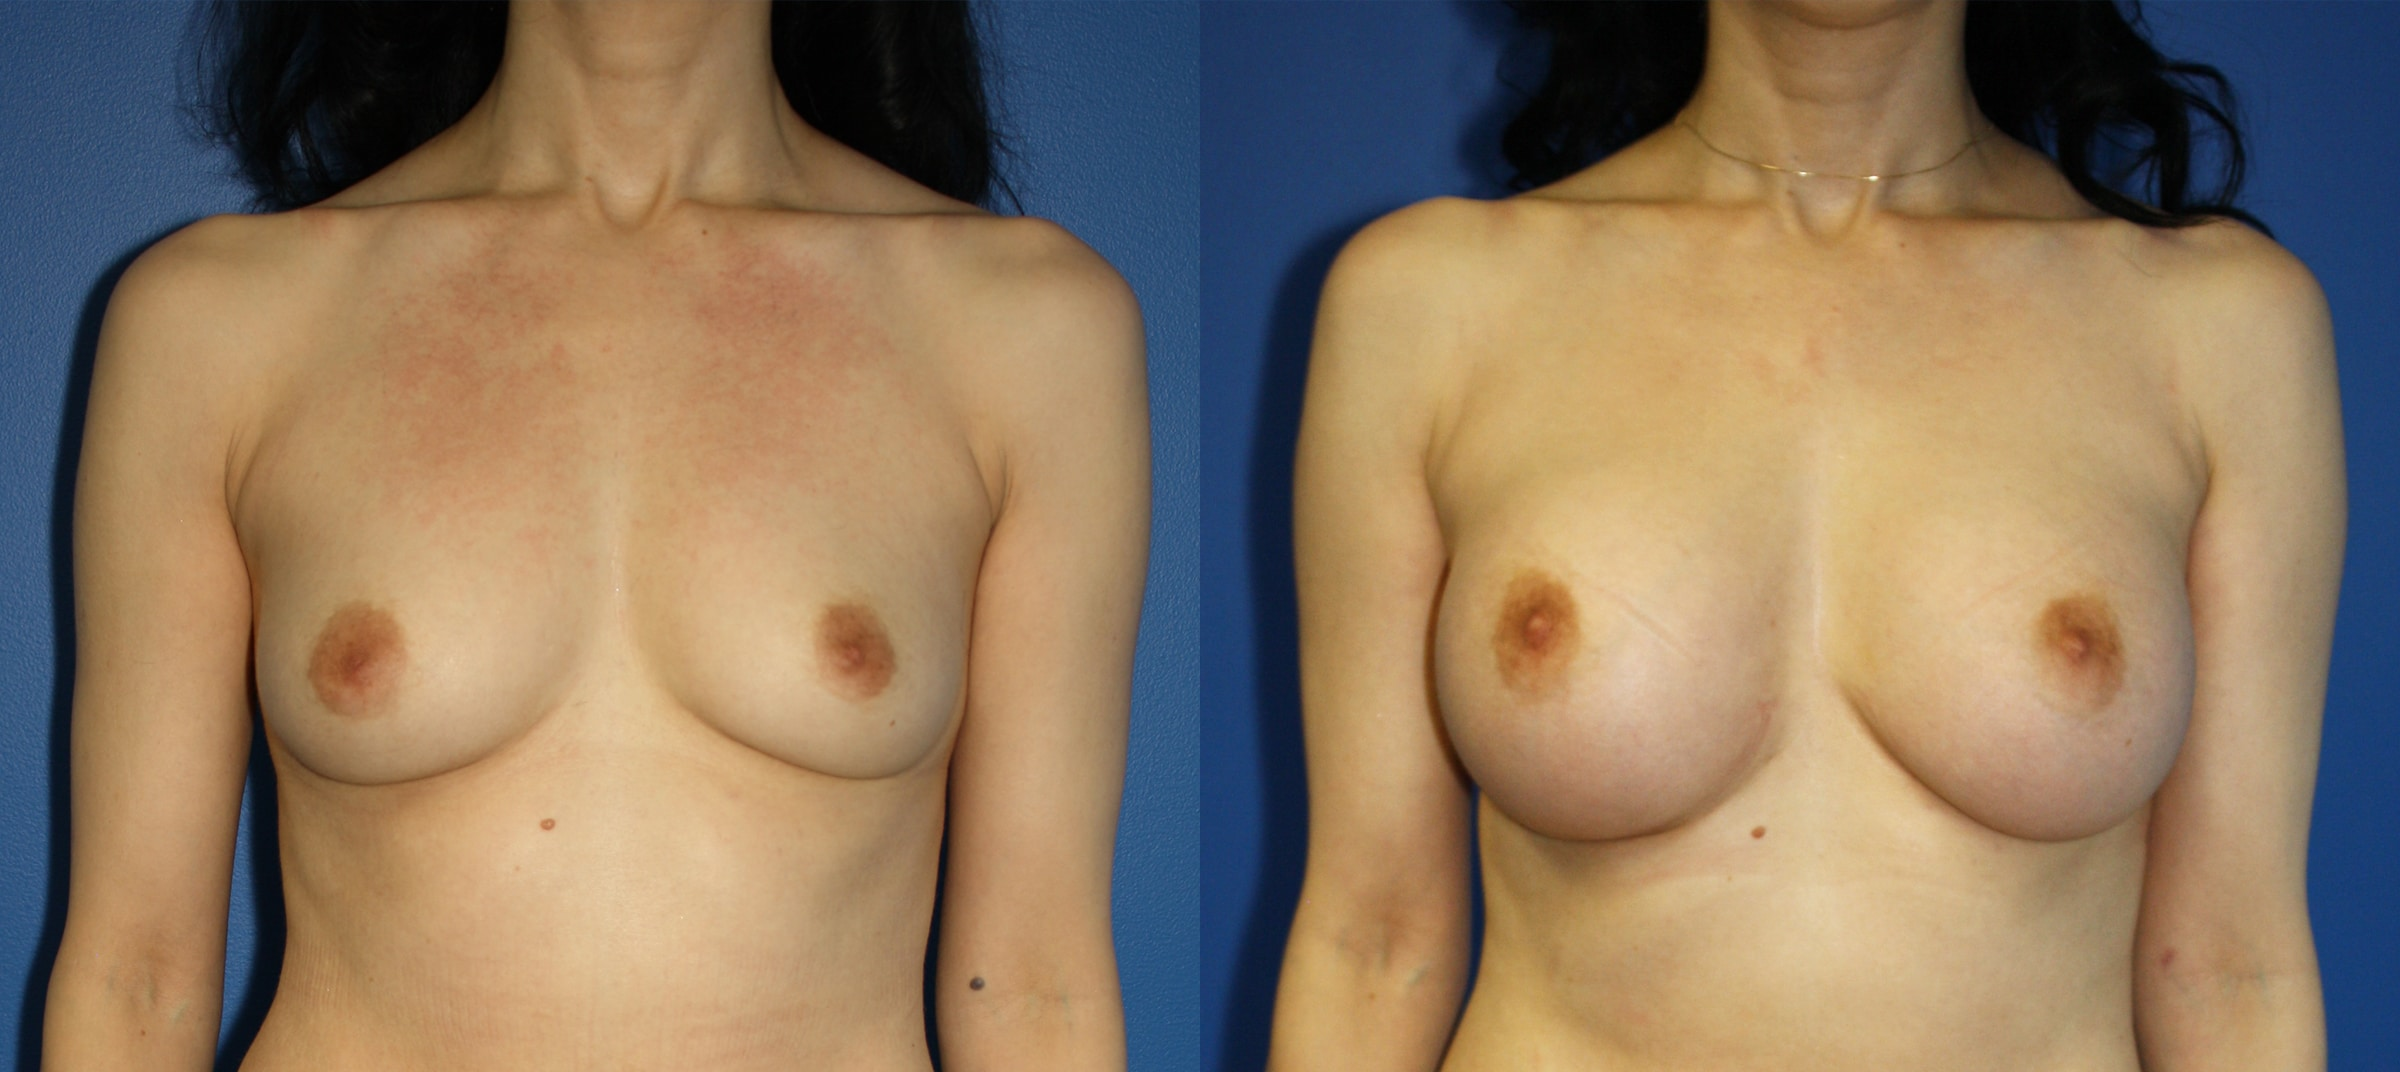 Breast implants to increase the size of the breasts by Dr. Steinbrech. After surgery, breasts are larger, rounder and lifted.